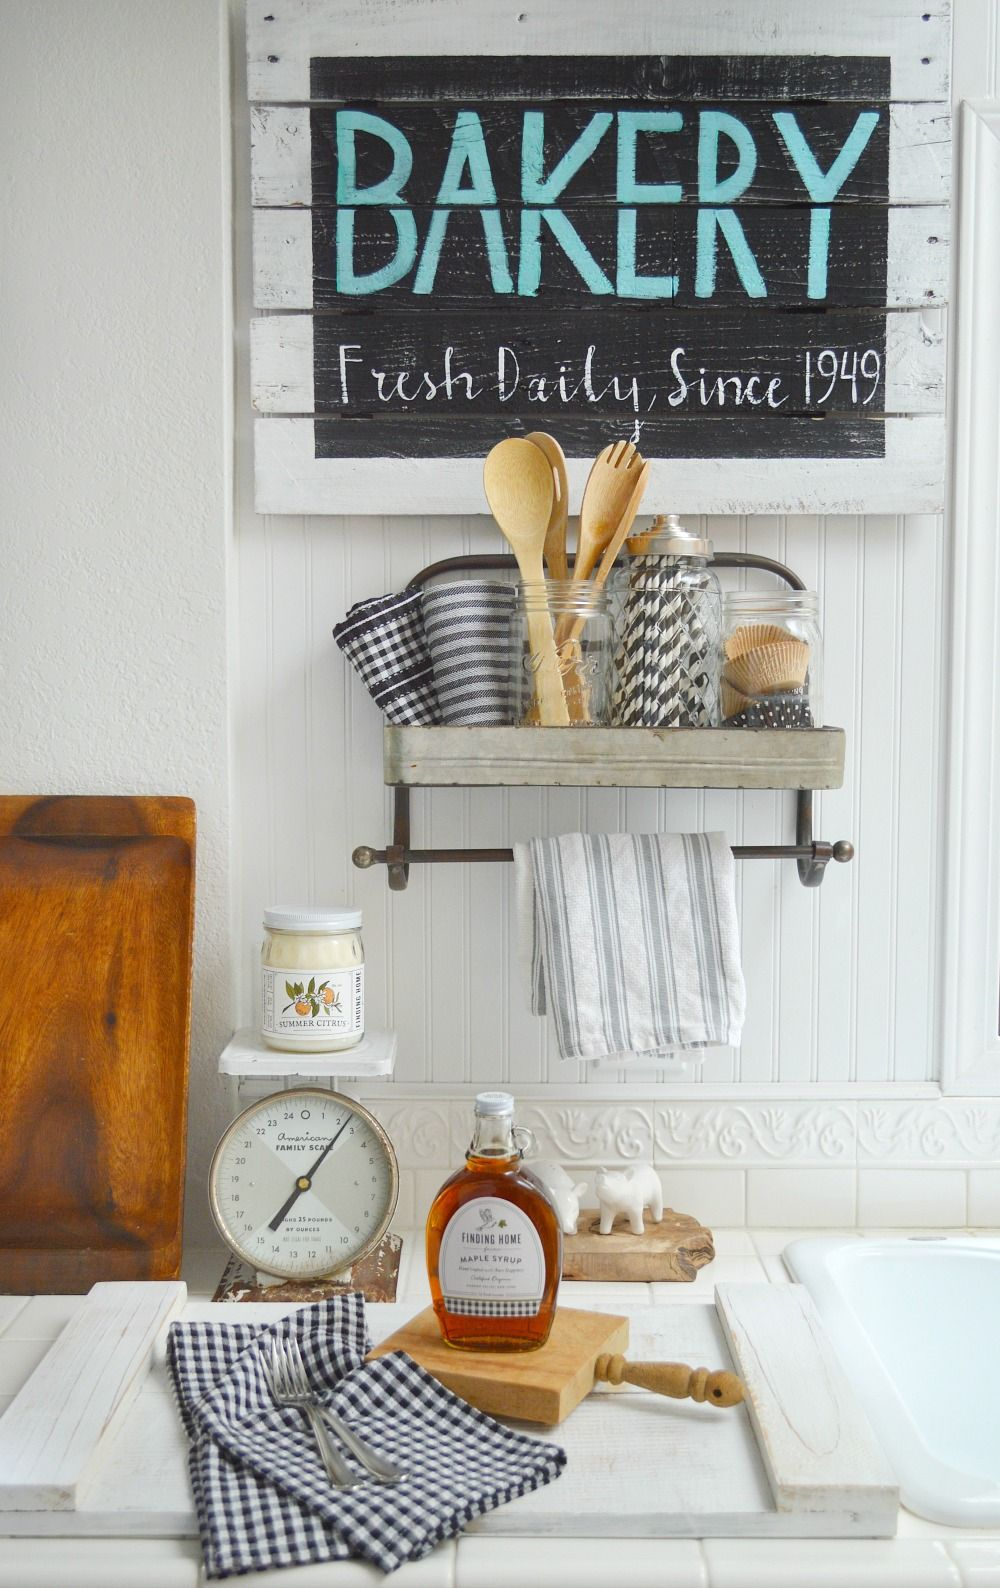 Pallet Wood Wall Art farmhouse kitchen vintage wood bakery sign | cottages, farmhouse